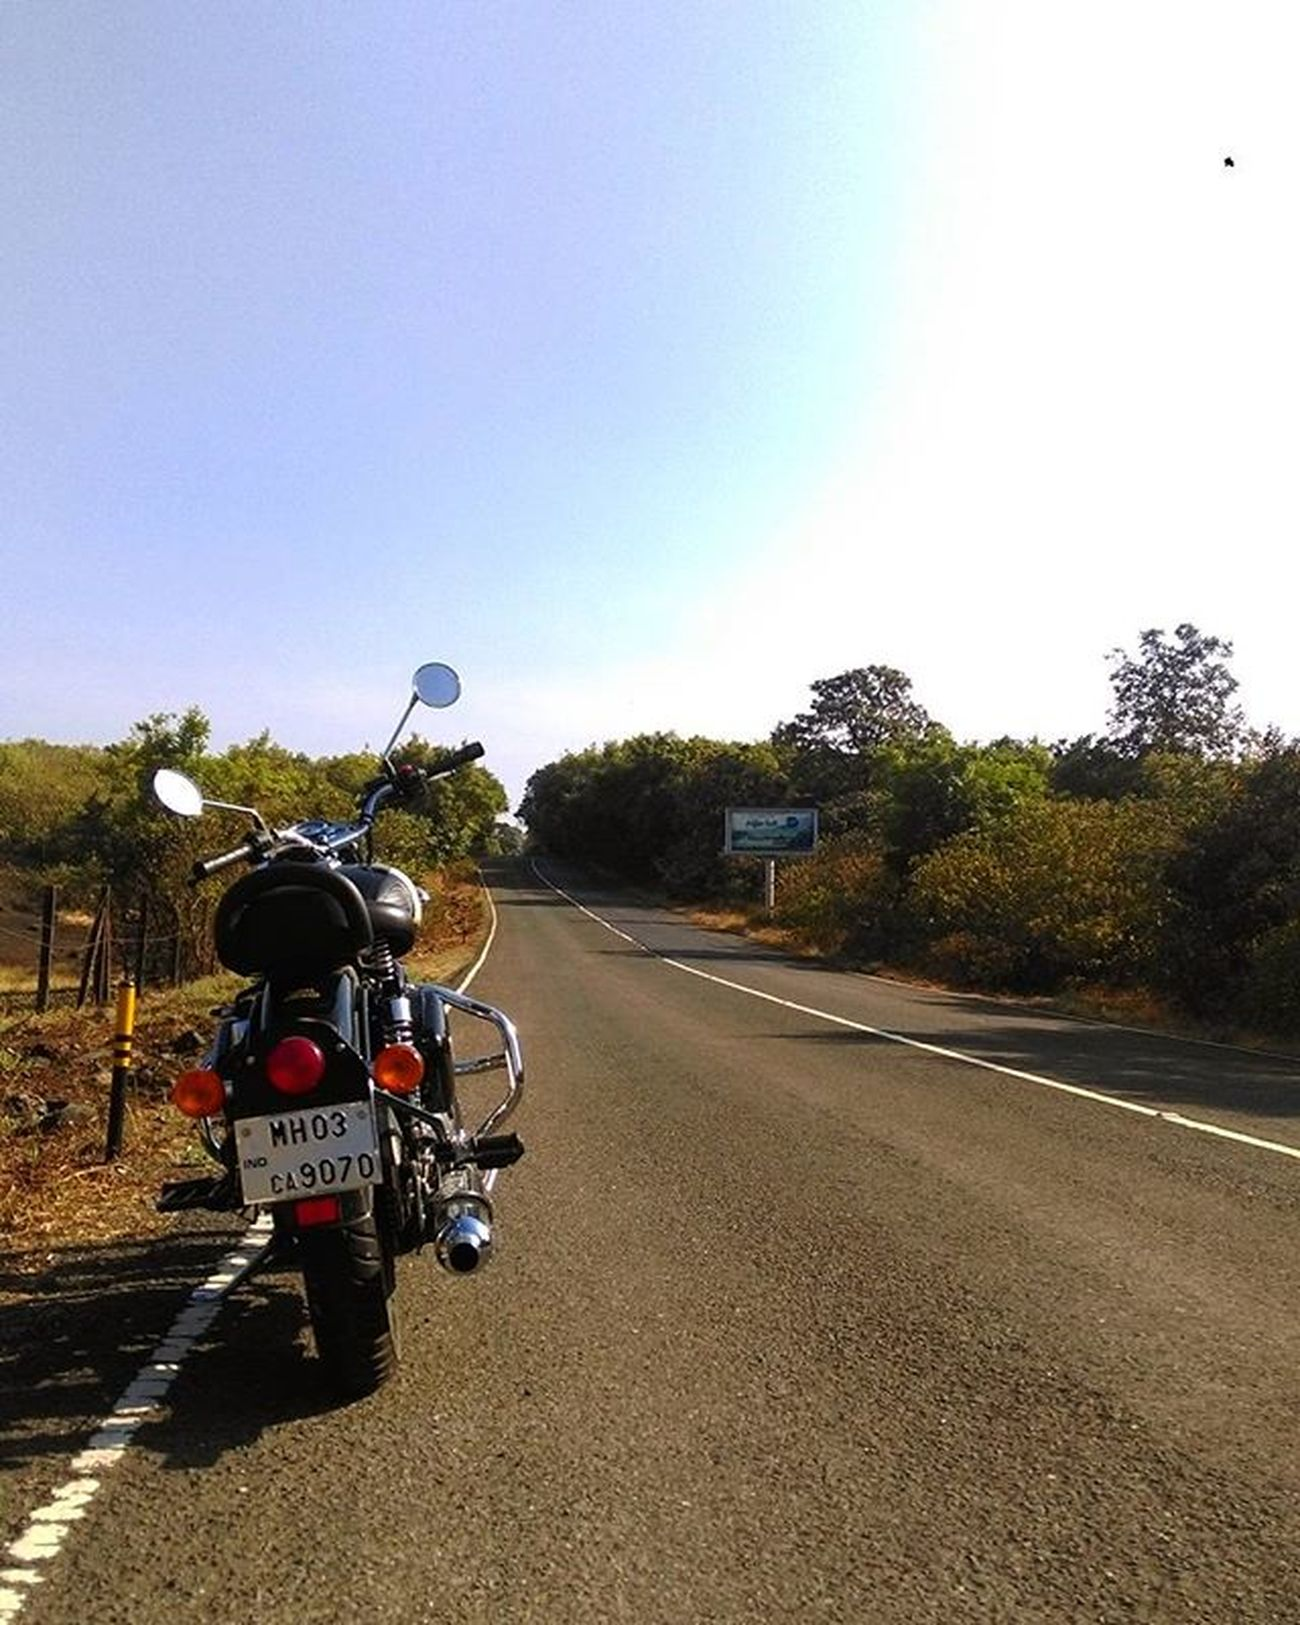 ..nothing can substitute Experience !! Nofilter Wanderlust Explore Ride Touring Biker Life Journey India Cruiser Motorcycle Royalenfield Classic Royalenfieldbeasts EatSleepShift Bulleteers Stayroyalliveenfield